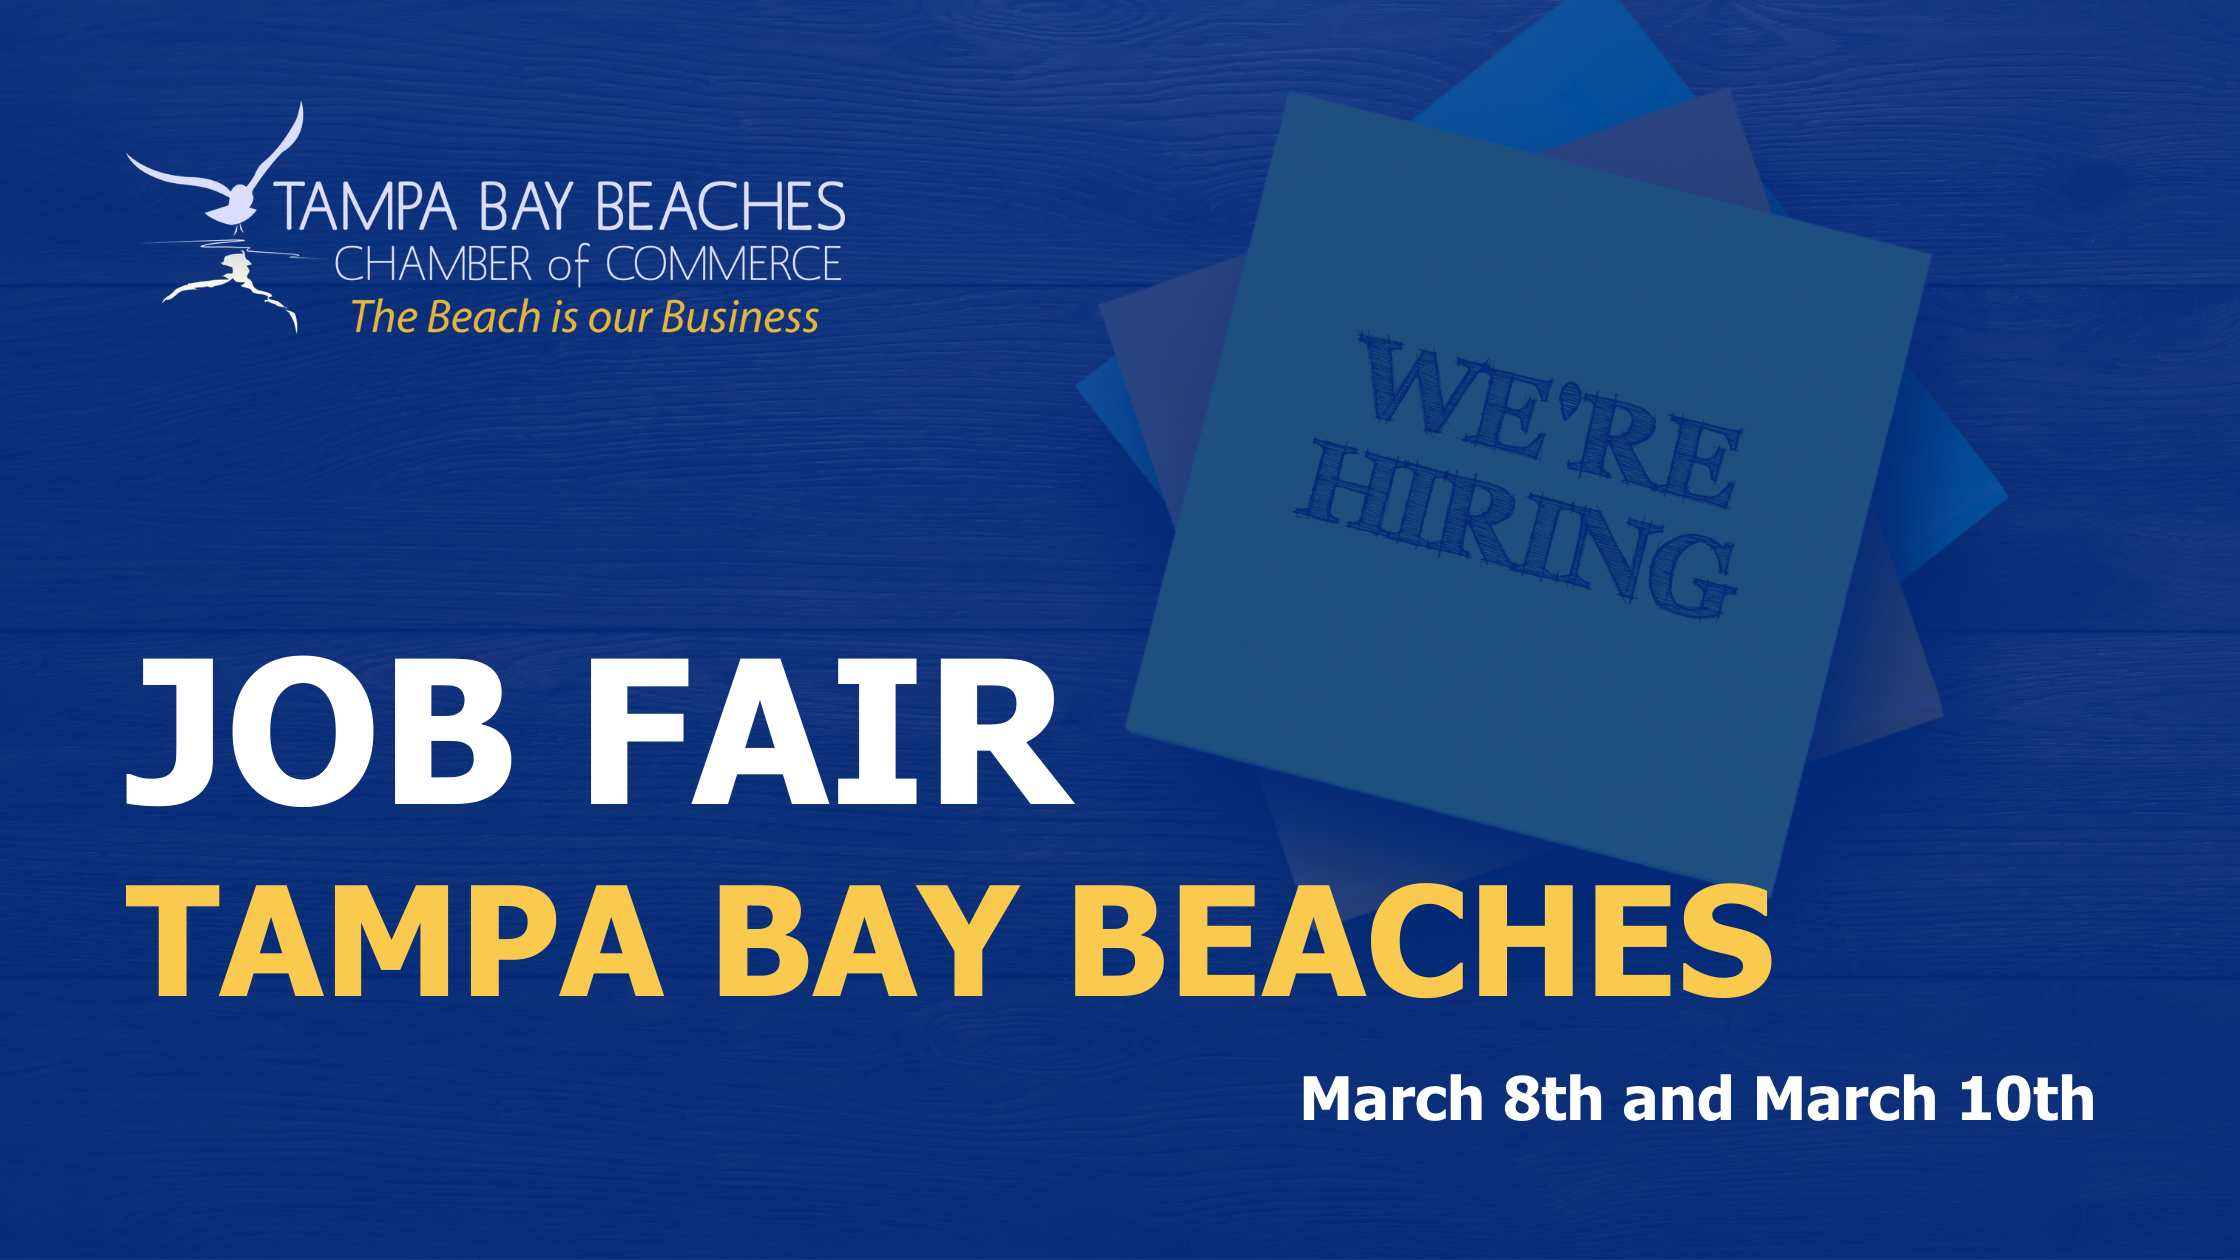 Five Job Fairs on the Tampa Bay Beaches